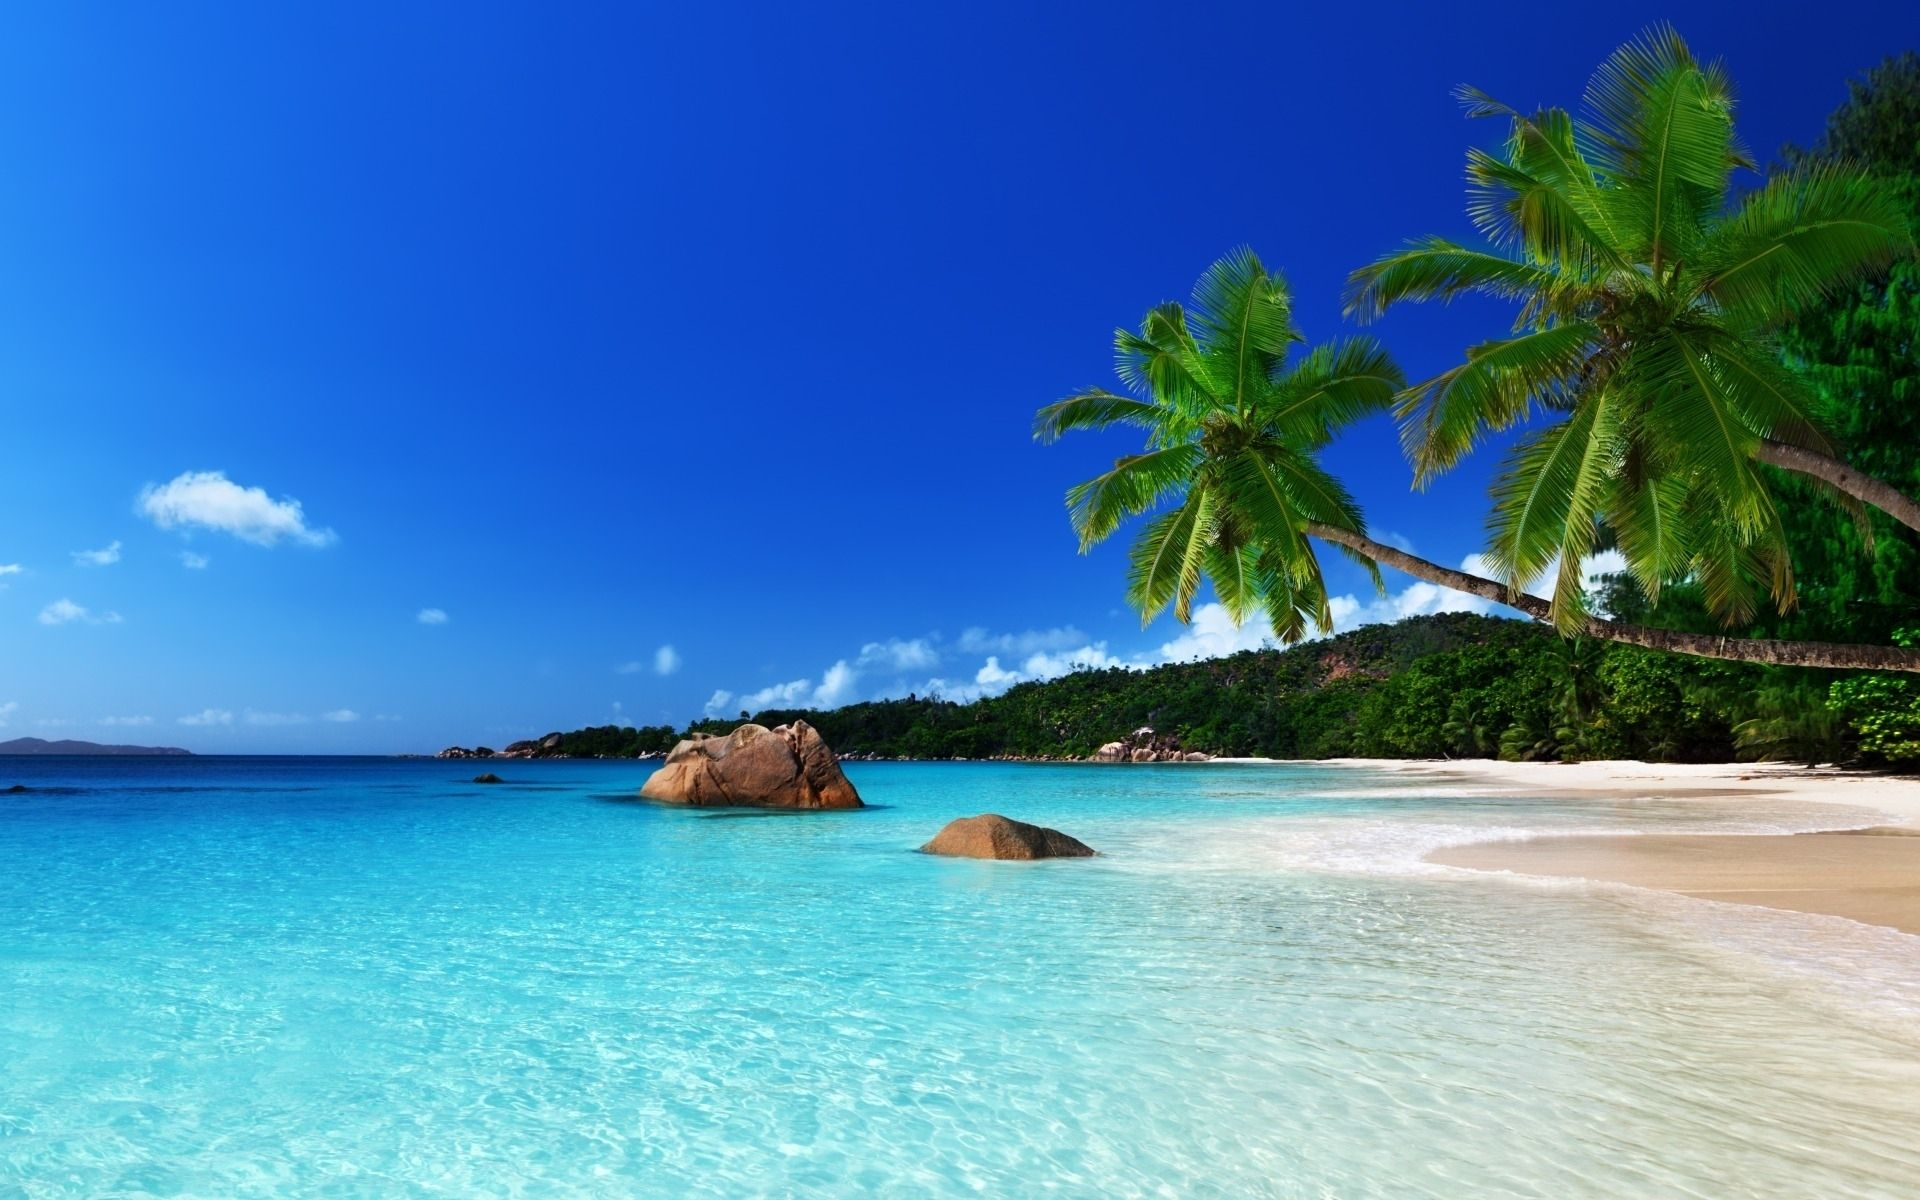 10 Latest Tropical Island Pictures Wallpaper Full Hd 1920 1080 For Pc Background Beach Wallpaper Island Wallpaper Beach Photos